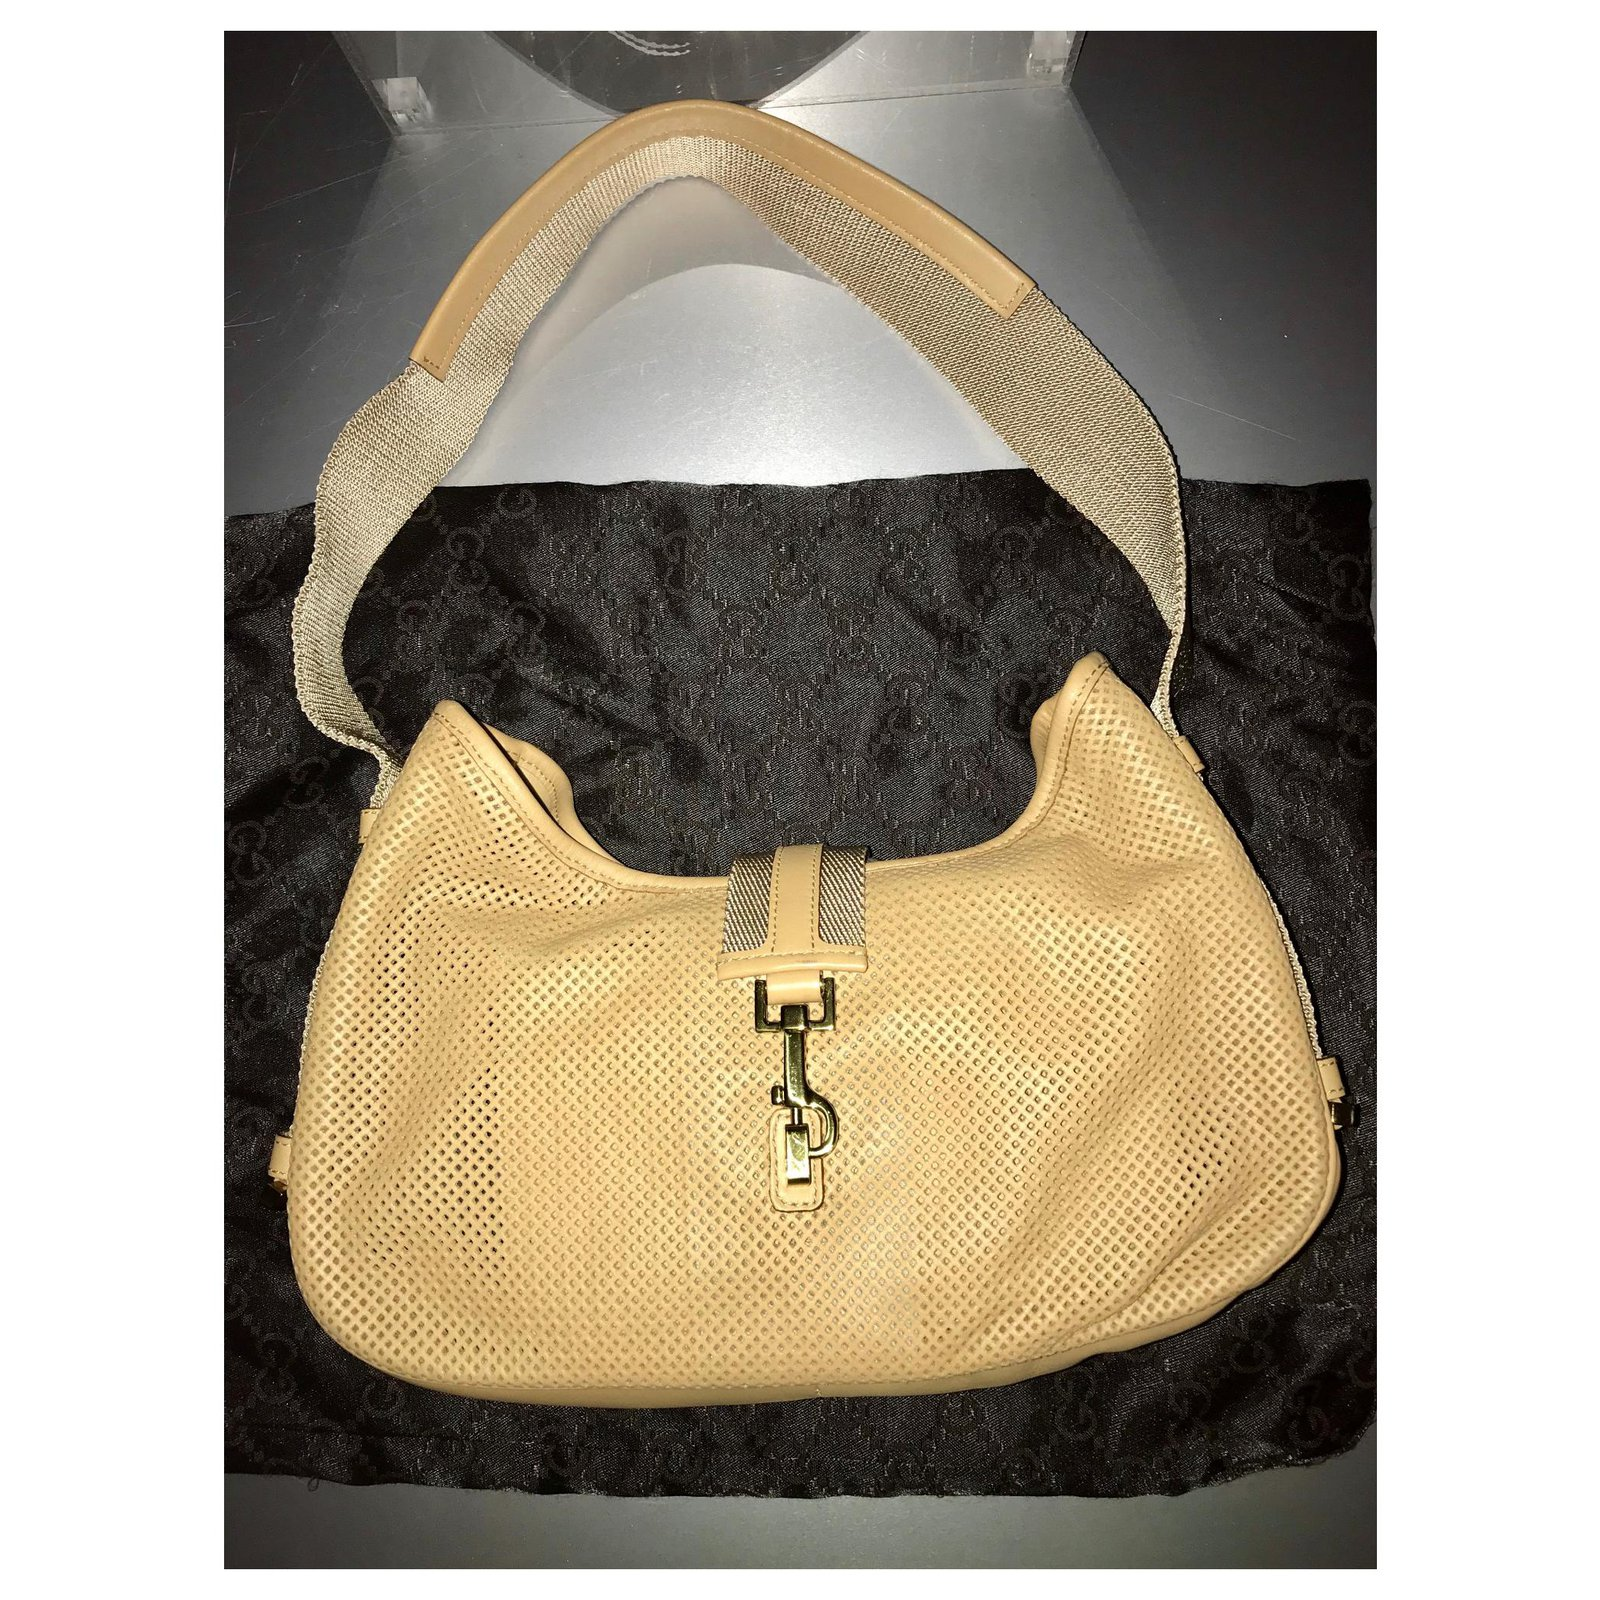 89e31e0d0 Gucci Gucci Jackie Shoulder bag in perforated leather Handbags Leather Beige  ref.124823 - Joli Closet